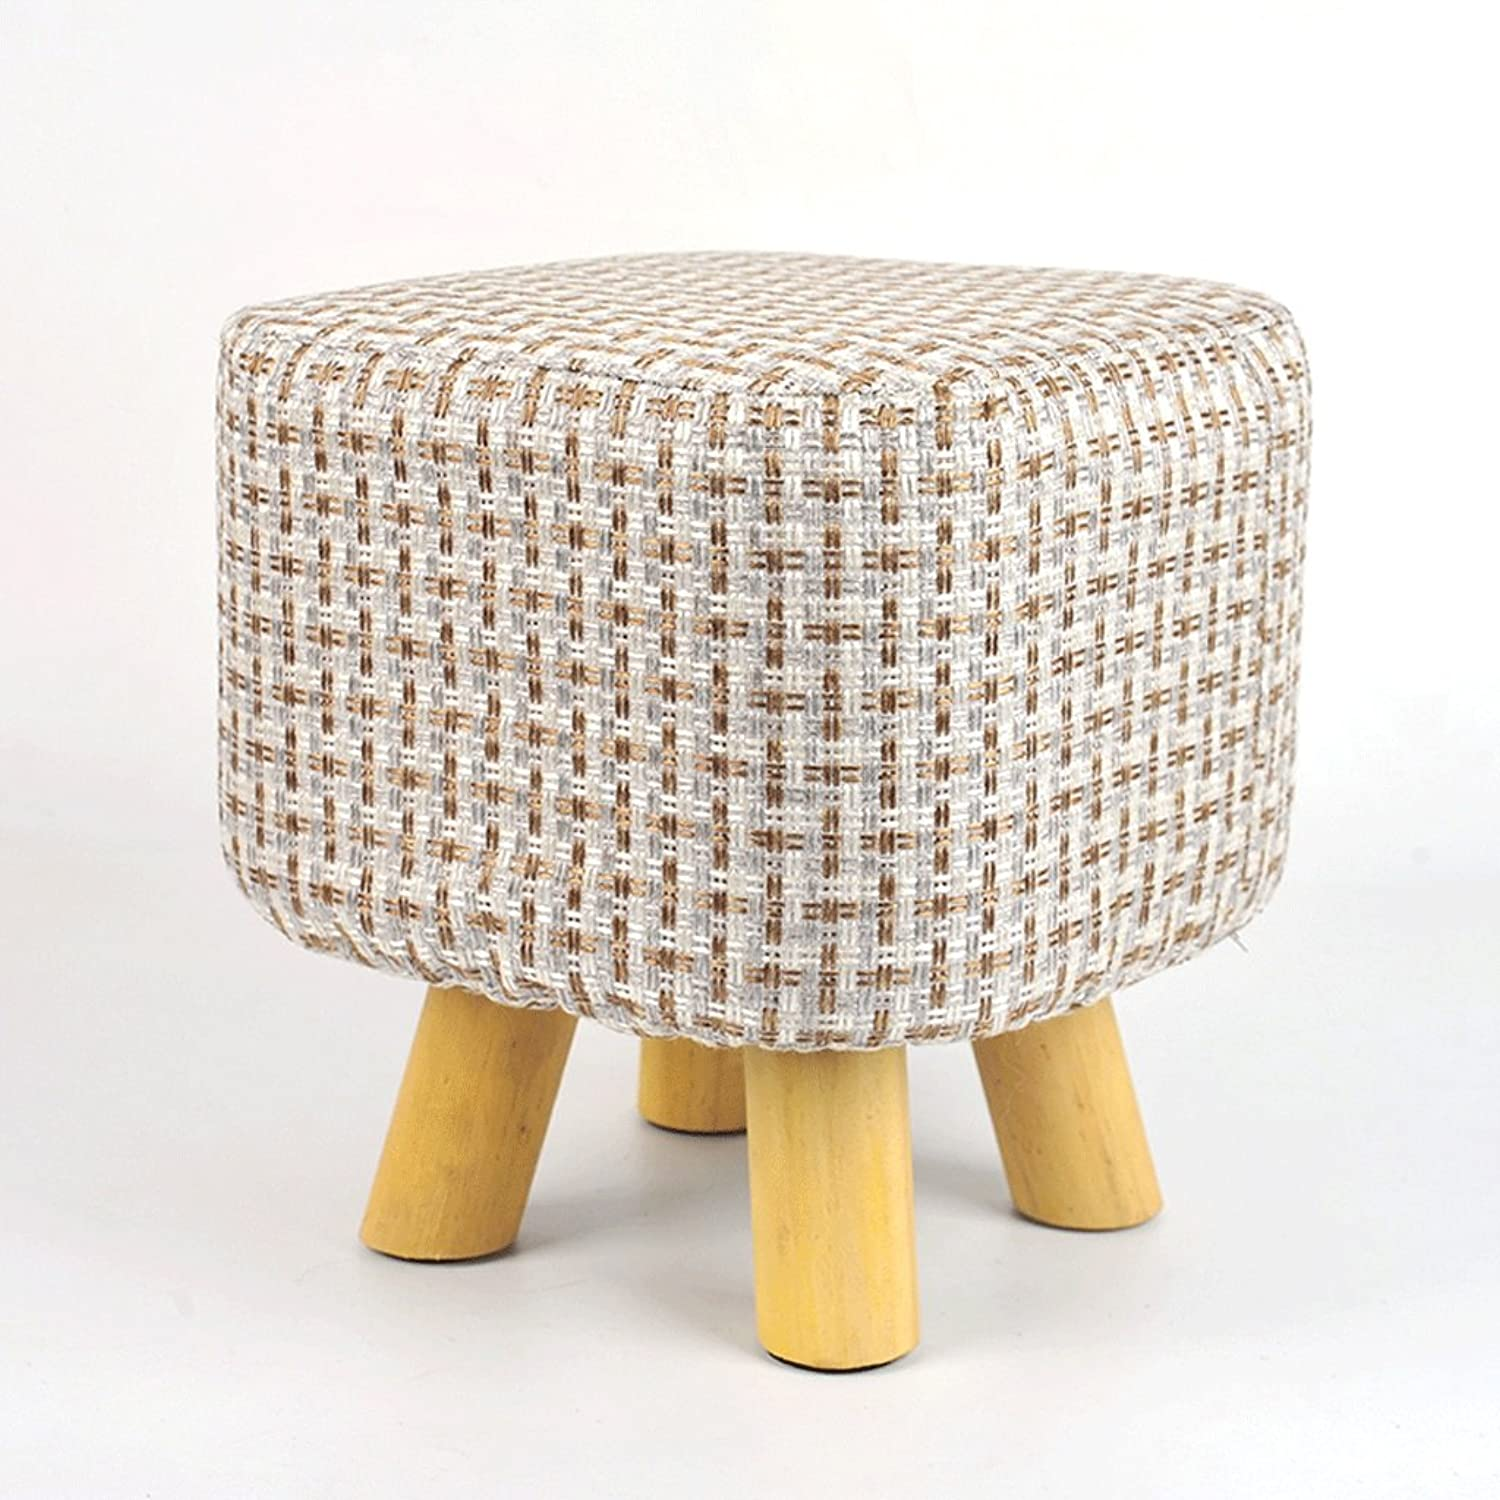 Grid Stool Solid Wood Stool Home Small Bench Fashion Solid Wood Creative Stool shoes Bench Living Room Coffee Table Cloth Stool Small Stool Creative Small Stool